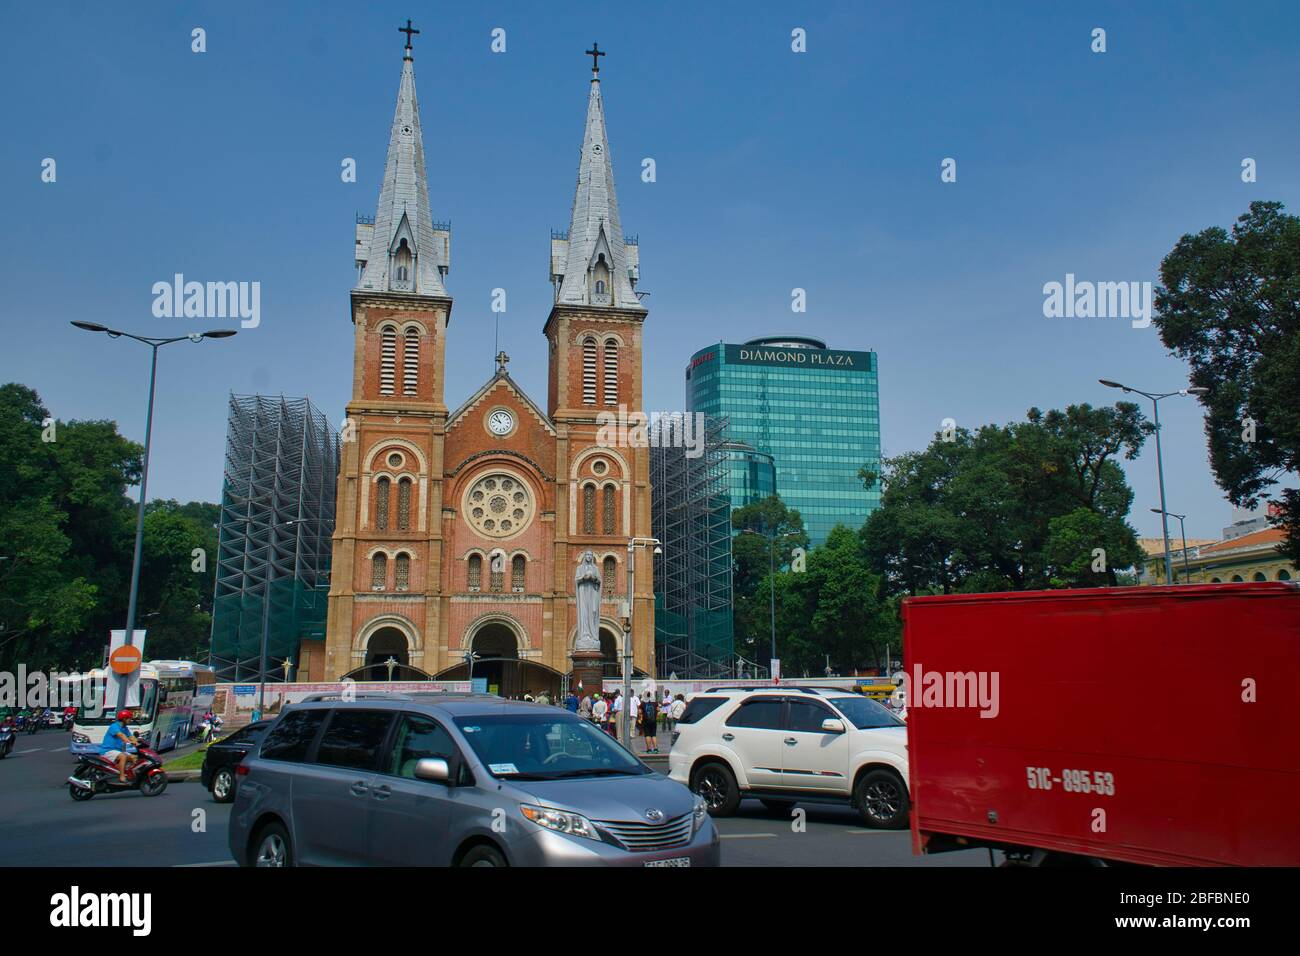 A view of Notre Dame cathedral  built by french in the city of Saigon also known as Ho Chi Minh City in Vietnam Stock Photo